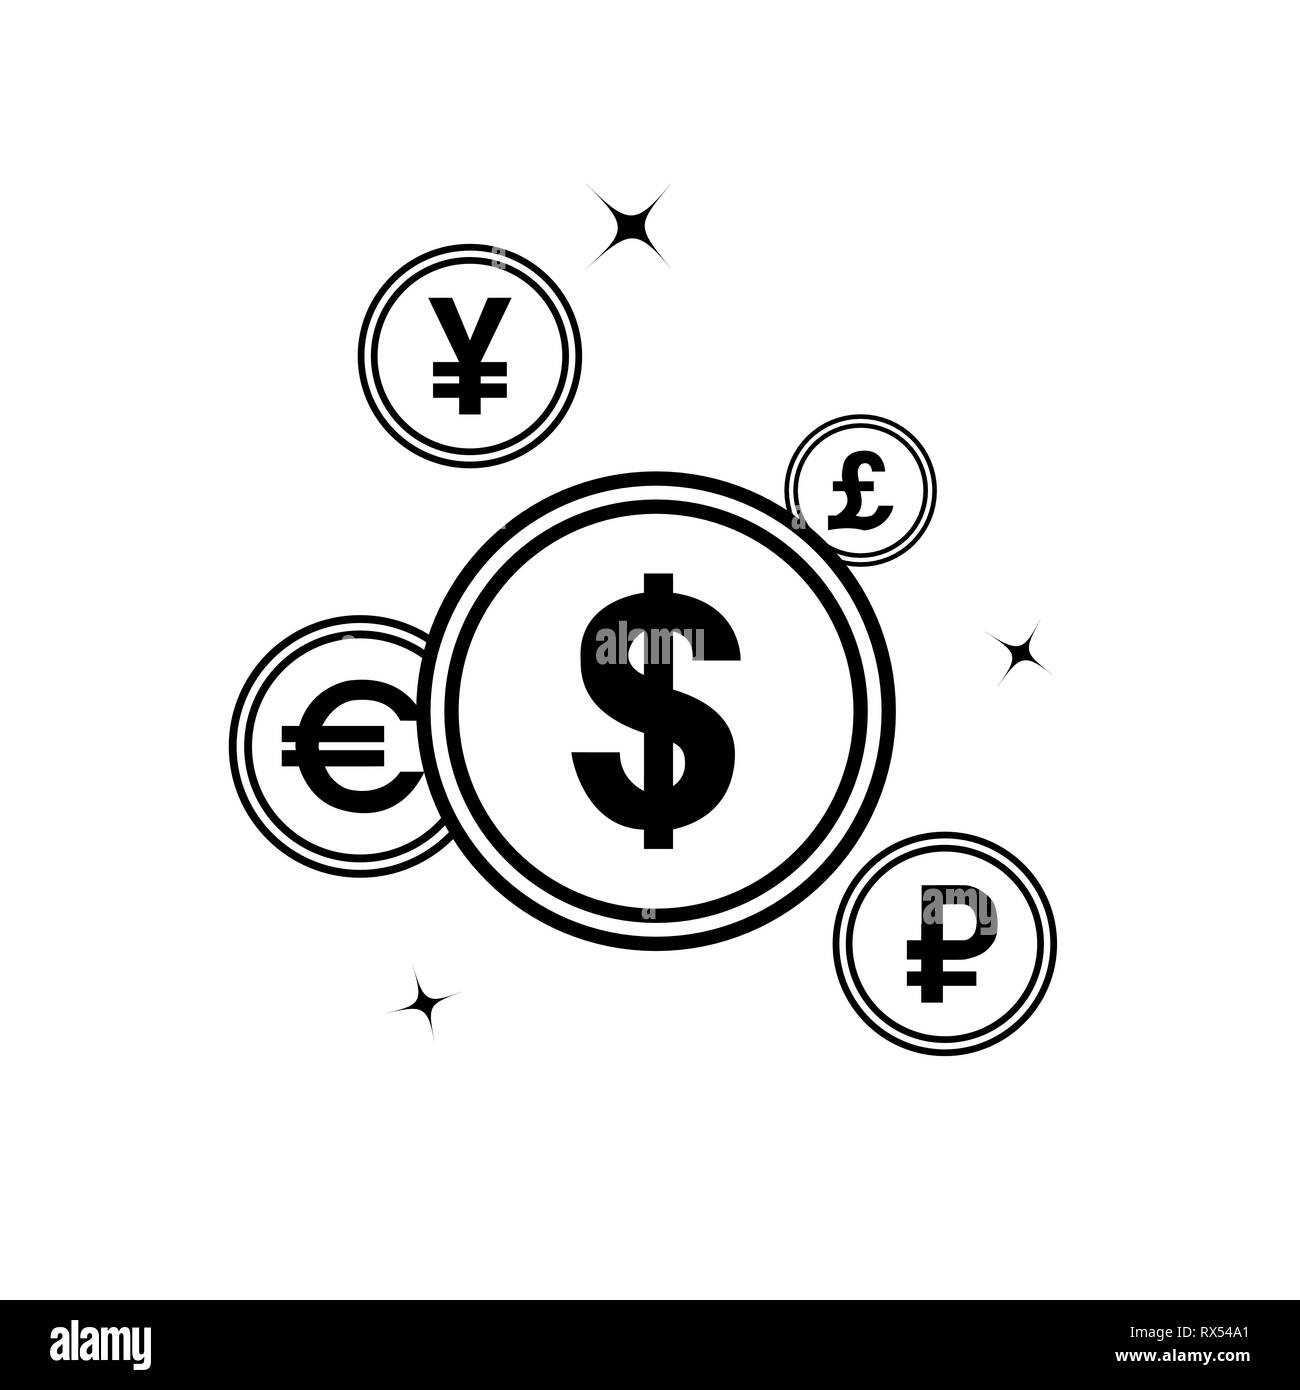 Currency symbols in an abstract flat design - Stock Vector